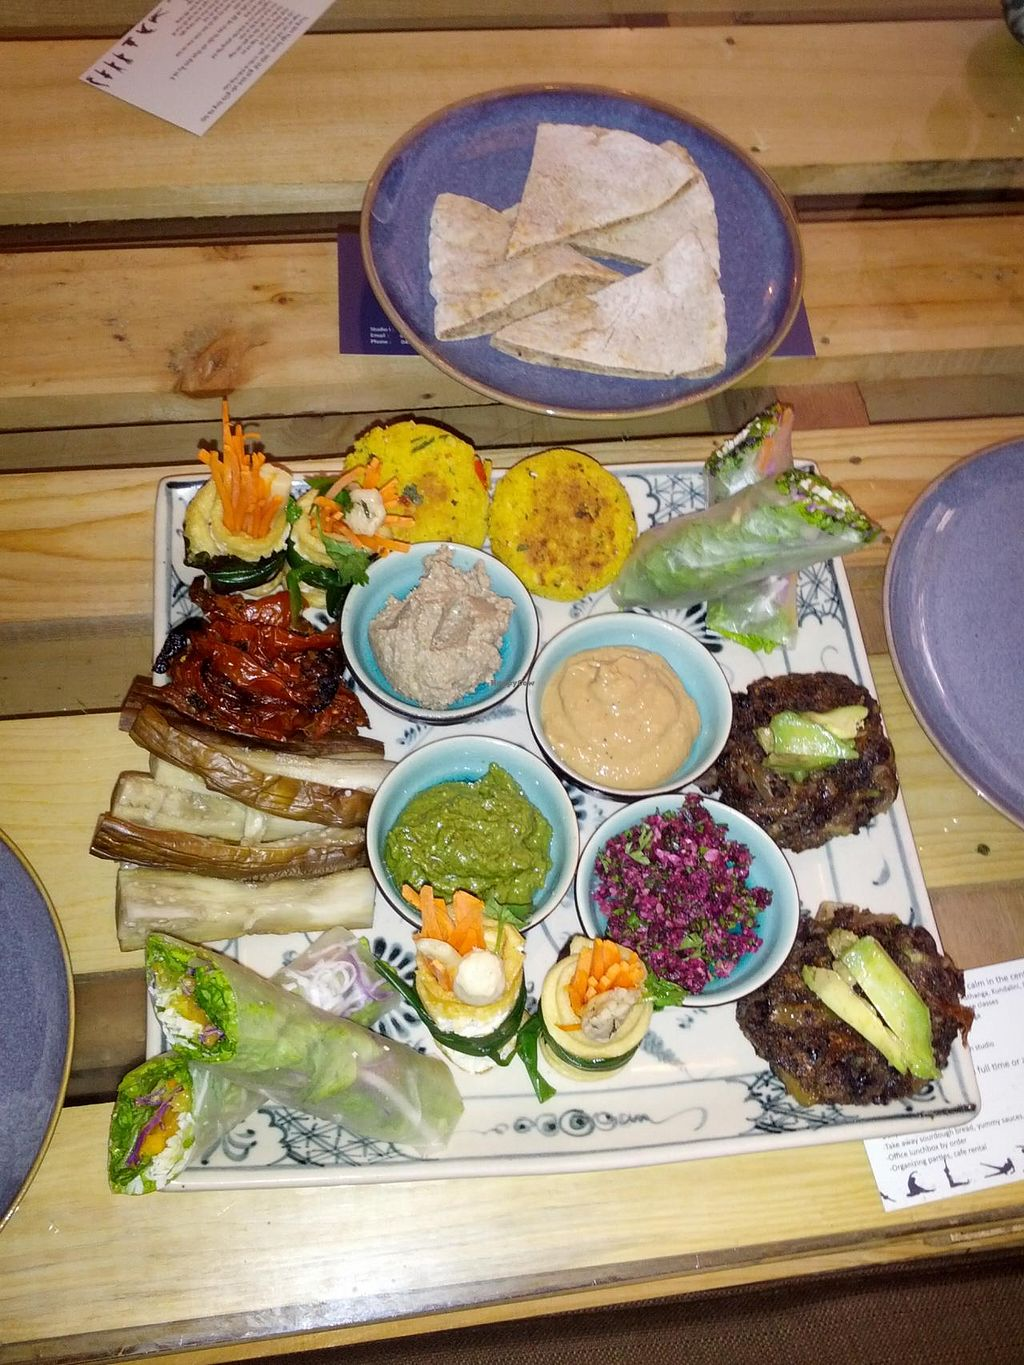 "Photo of Zenith Yoga Cafe  by <a href=""/members/profile/Floyd205"">Floyd205</a> <br/>Zenith's tasty taster plate <br/> November 18, 2014  - <a href='/contact/abuse/image/41001/85997'>Report</a>"